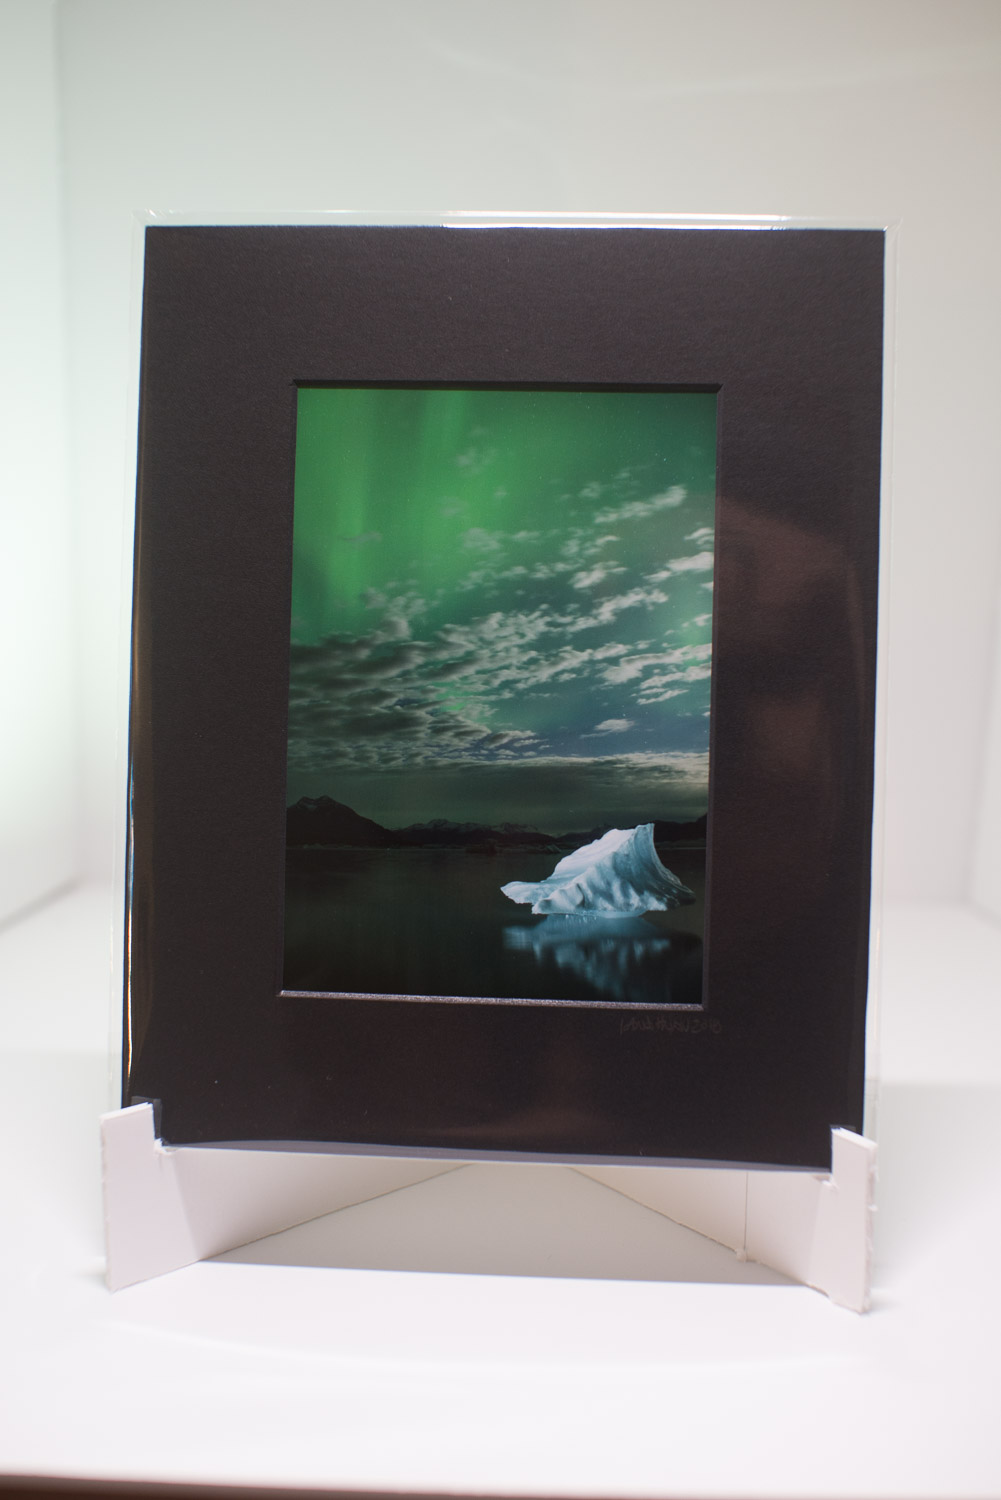 Tips for Photographing Artwork for Marketing Purposes - photo in a frame on a small stand